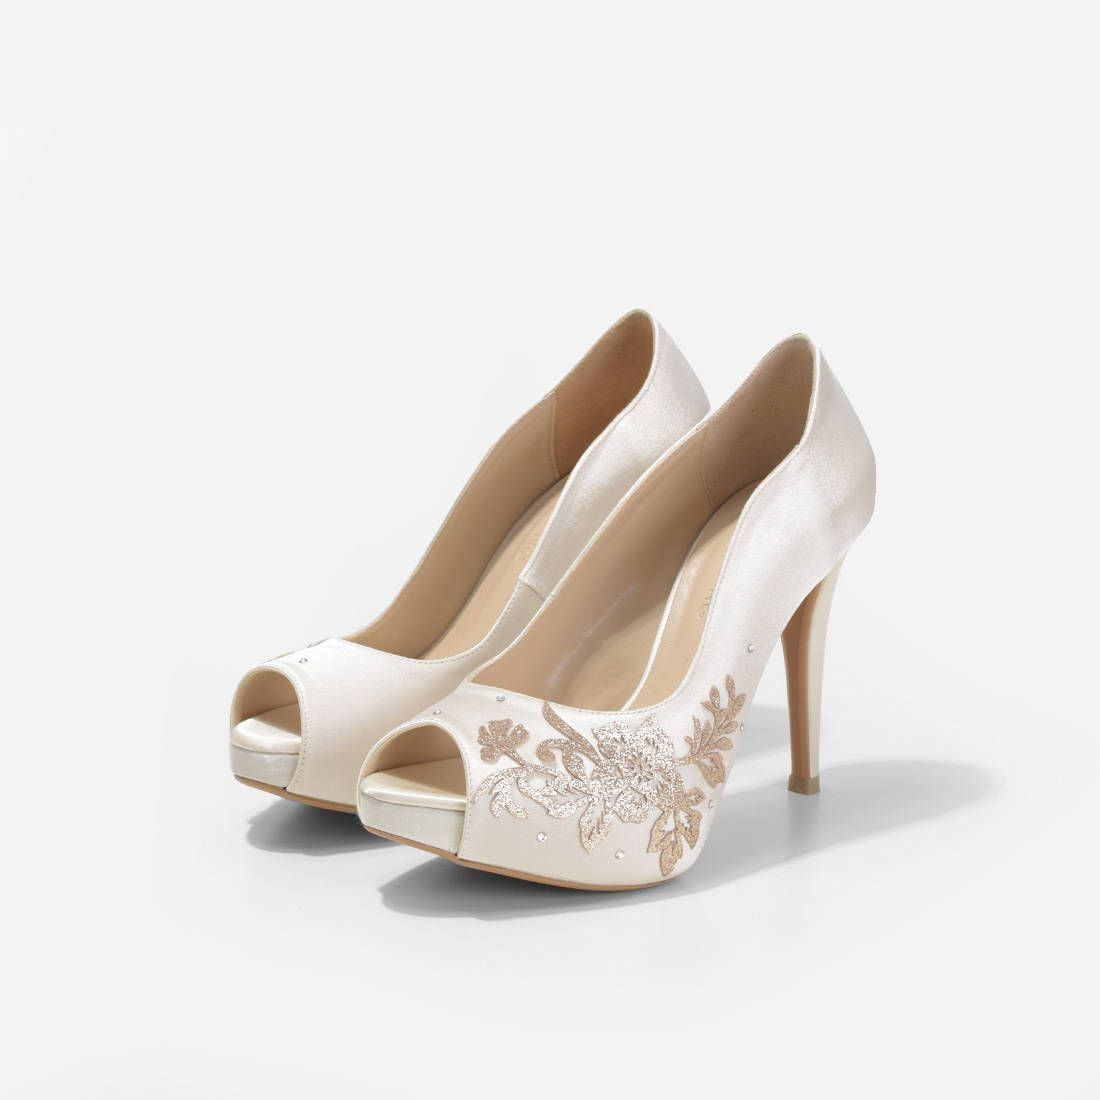 Pin On Christy Ng Ready Made Wedding Heels